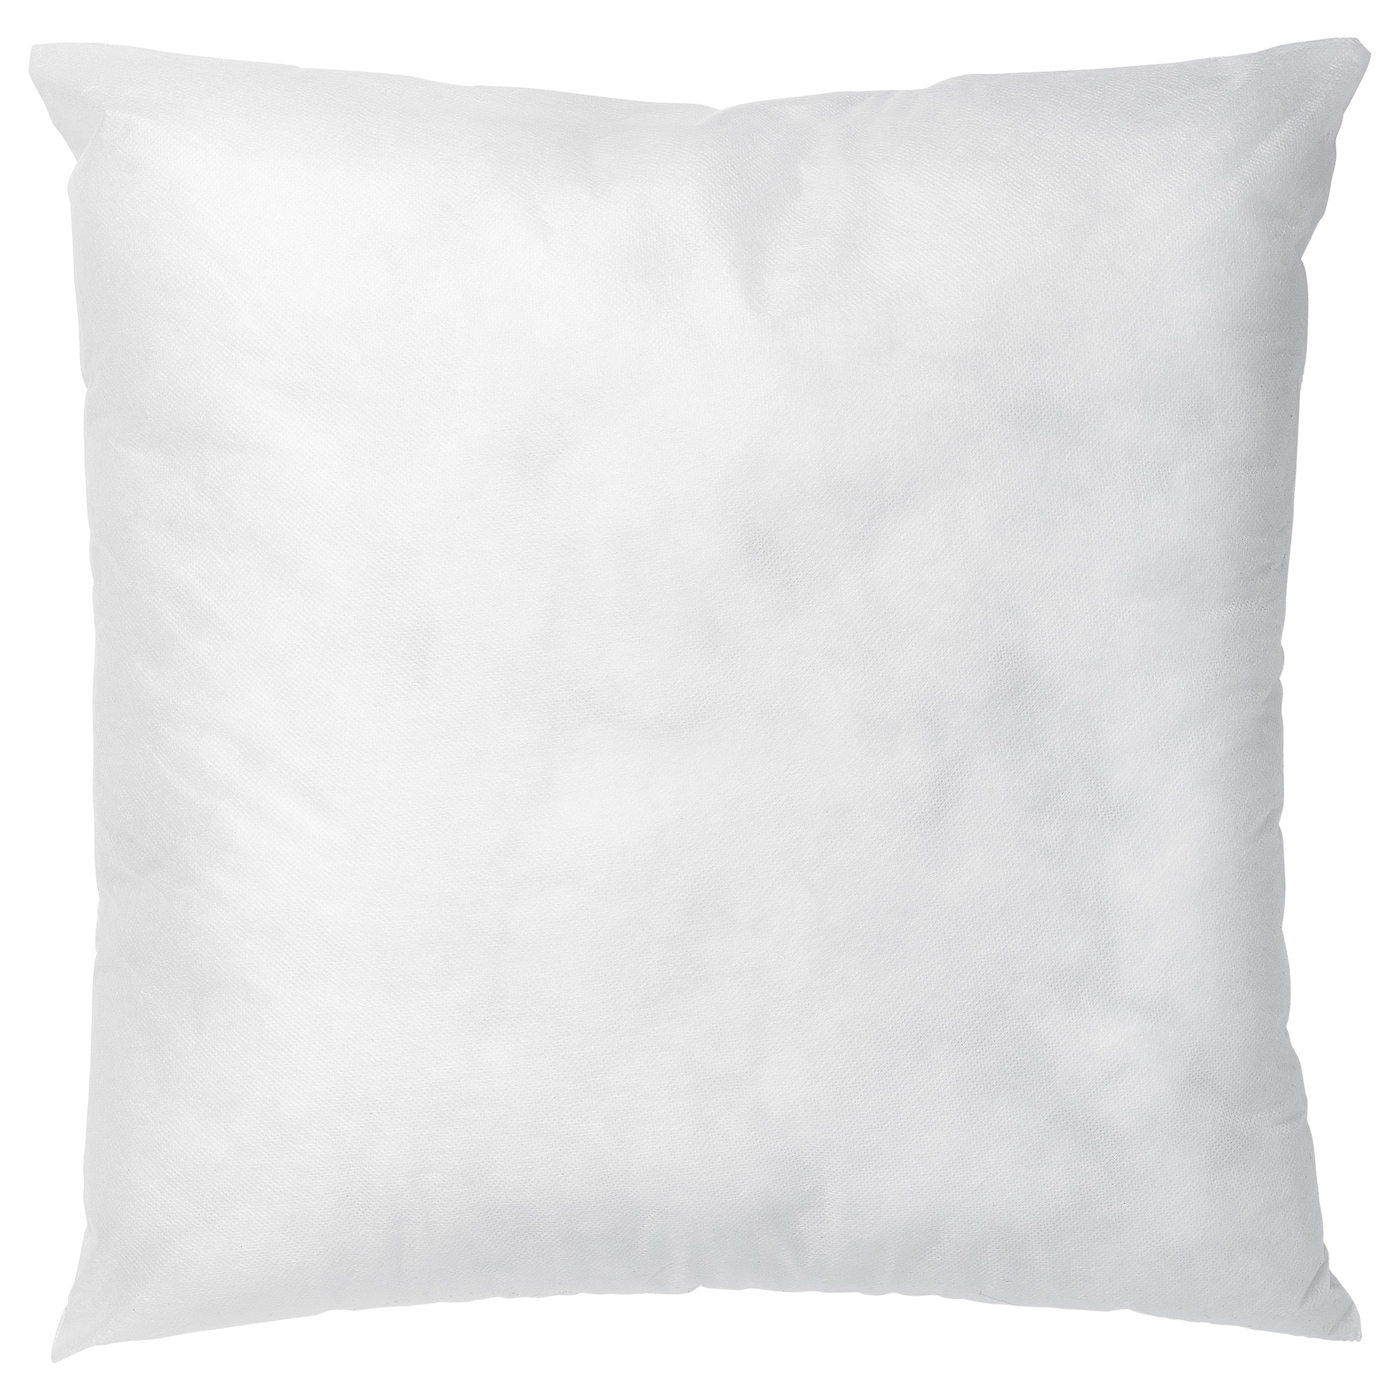 Plain White 43 cm x 43 cm 1 Pack Luxury Filled Cushions 17 x 17 Inches Poly Cotton Cushion Pad Inner for Indoor Outdoor Seat Inserts Pack of 1